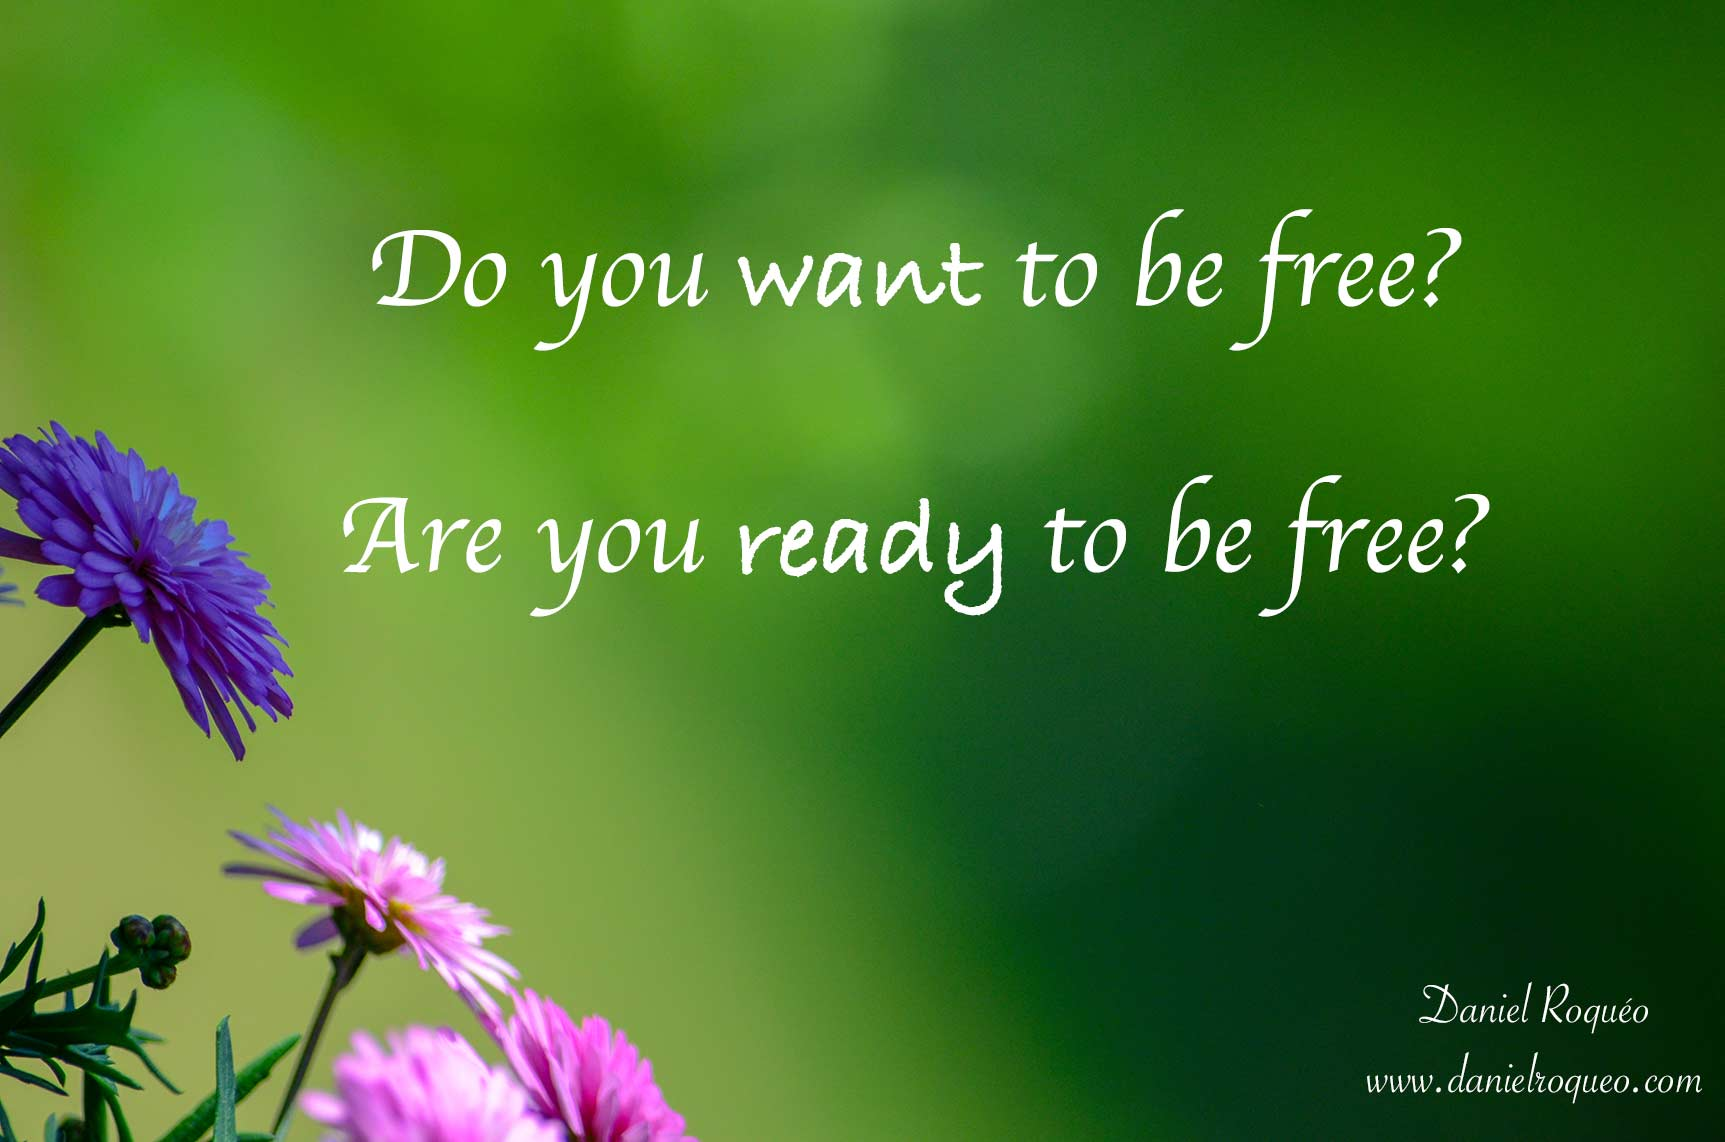 Do you want to be free? Are you ready to be free?